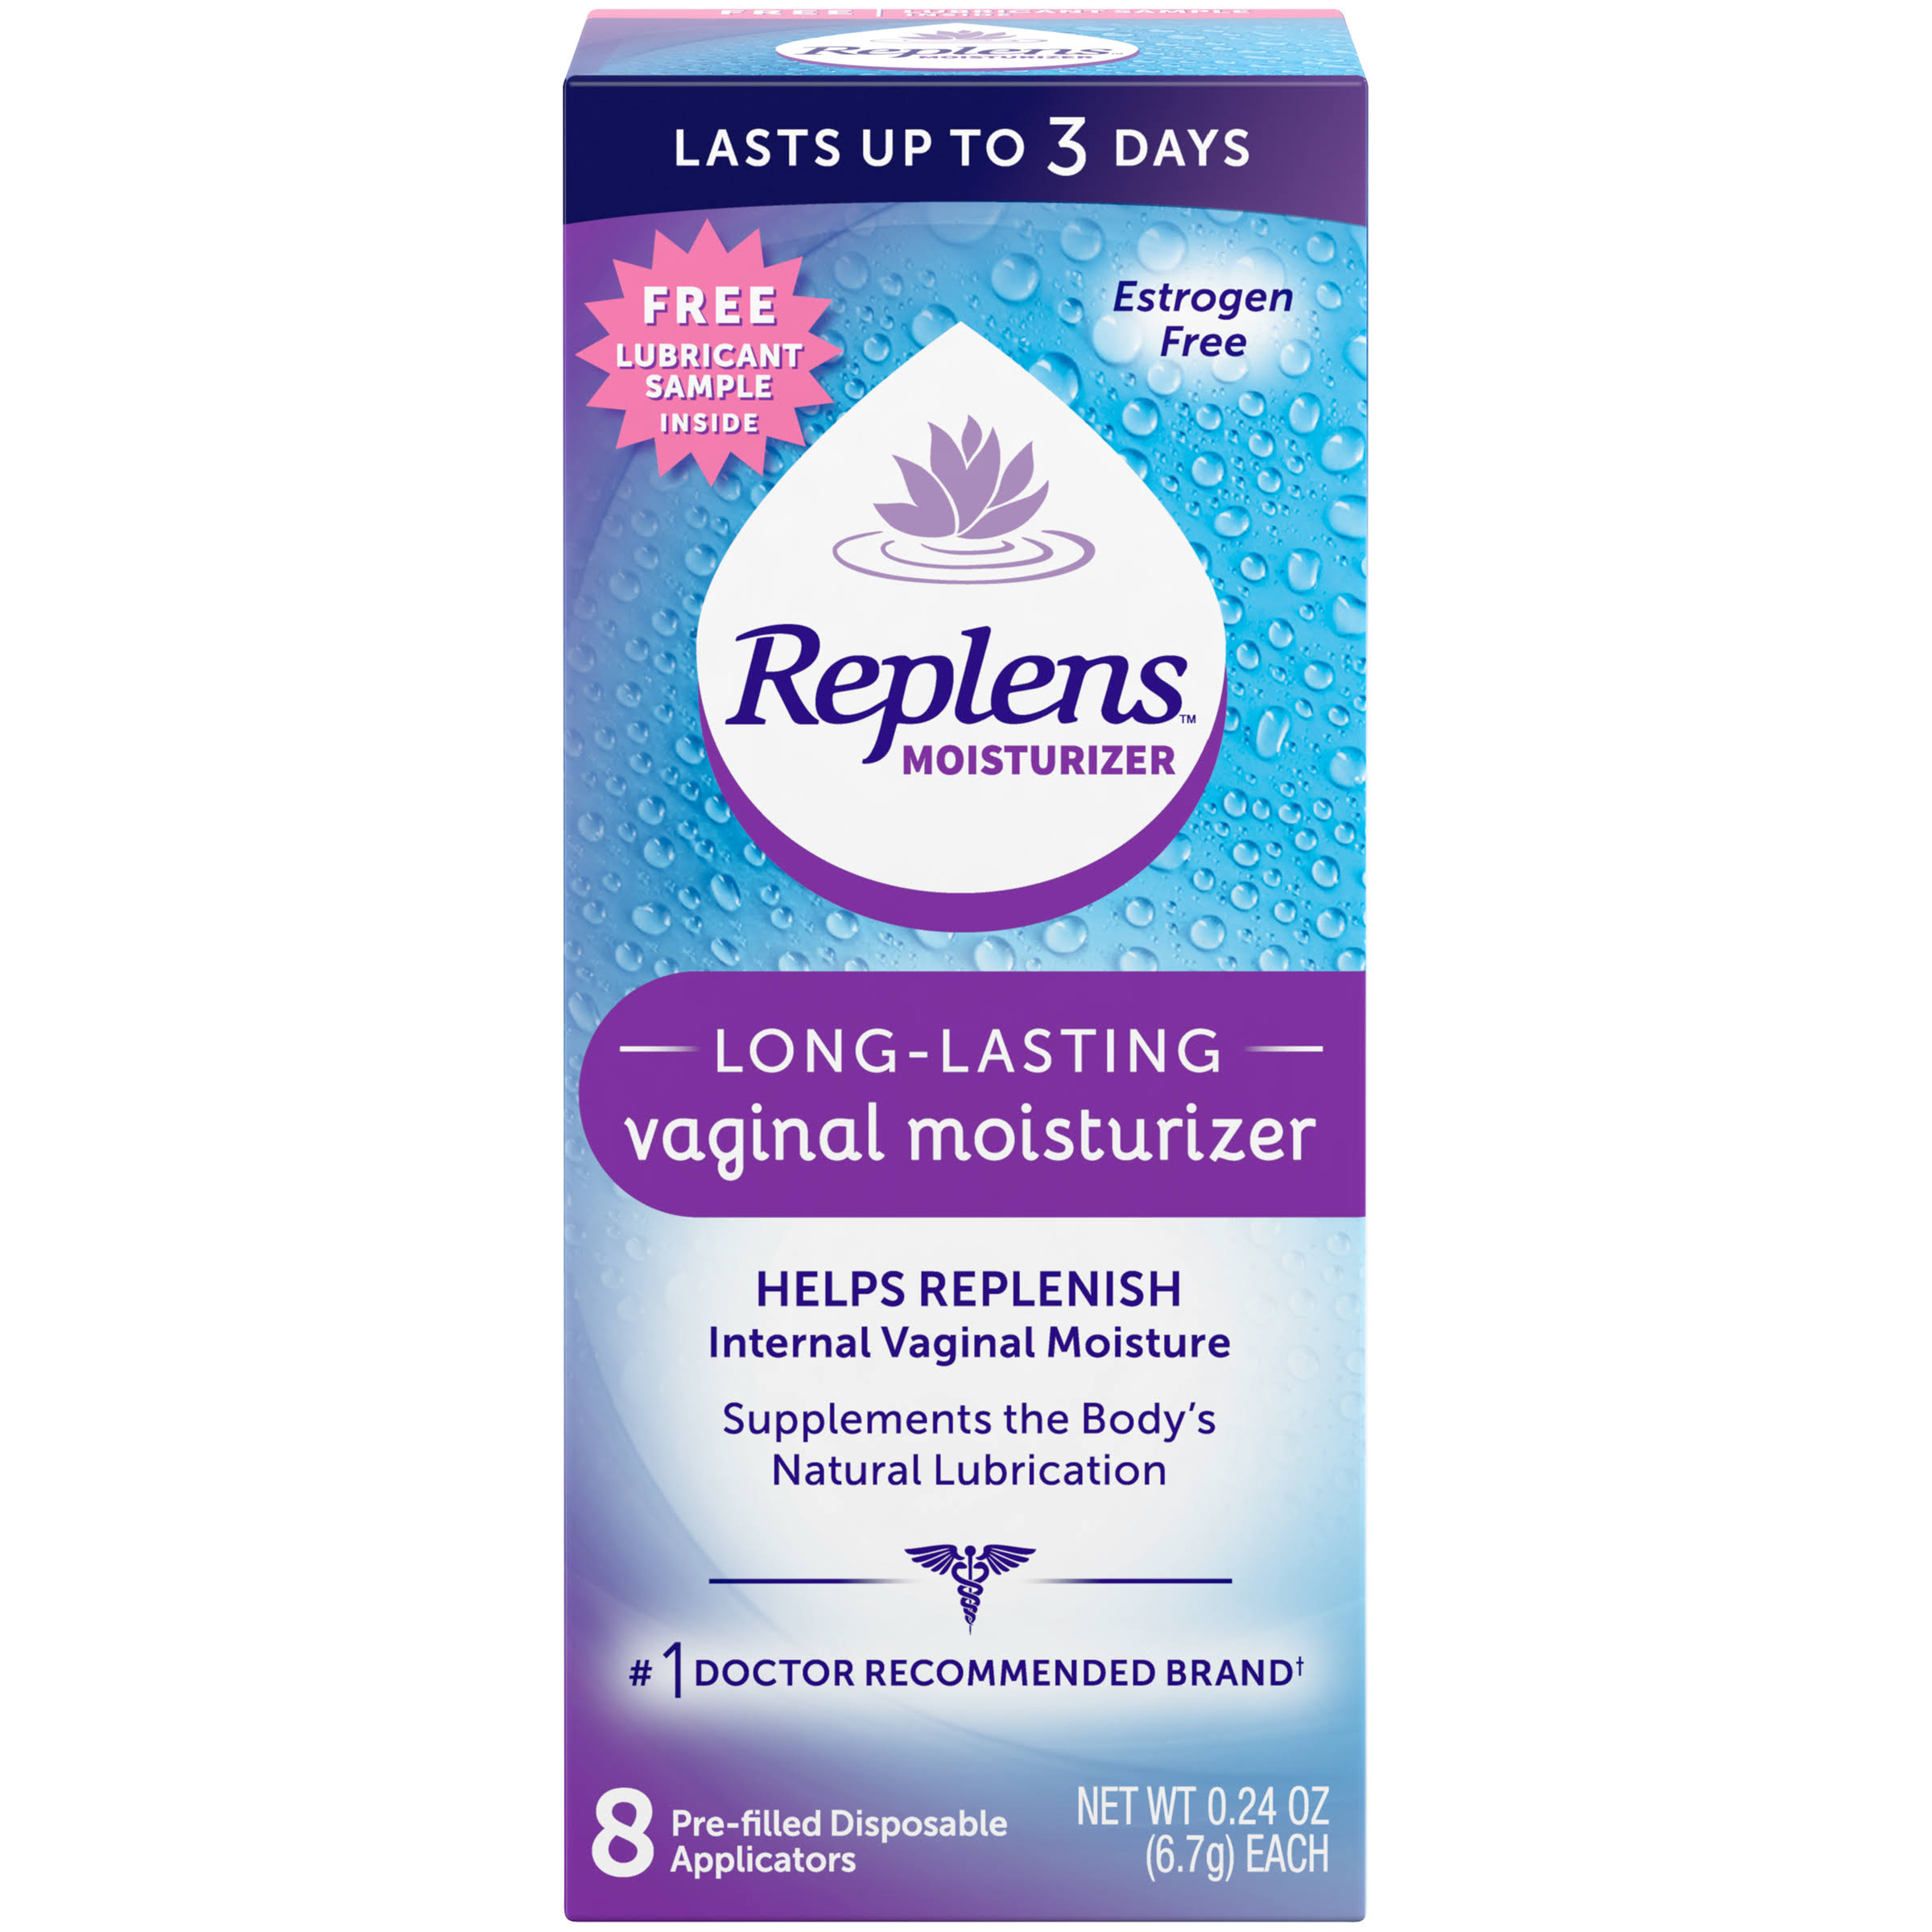 Replens Pre-Filled Disposable Applicators Long-Lasting Vaginal Moisturizer - 8ct, 0.24oz